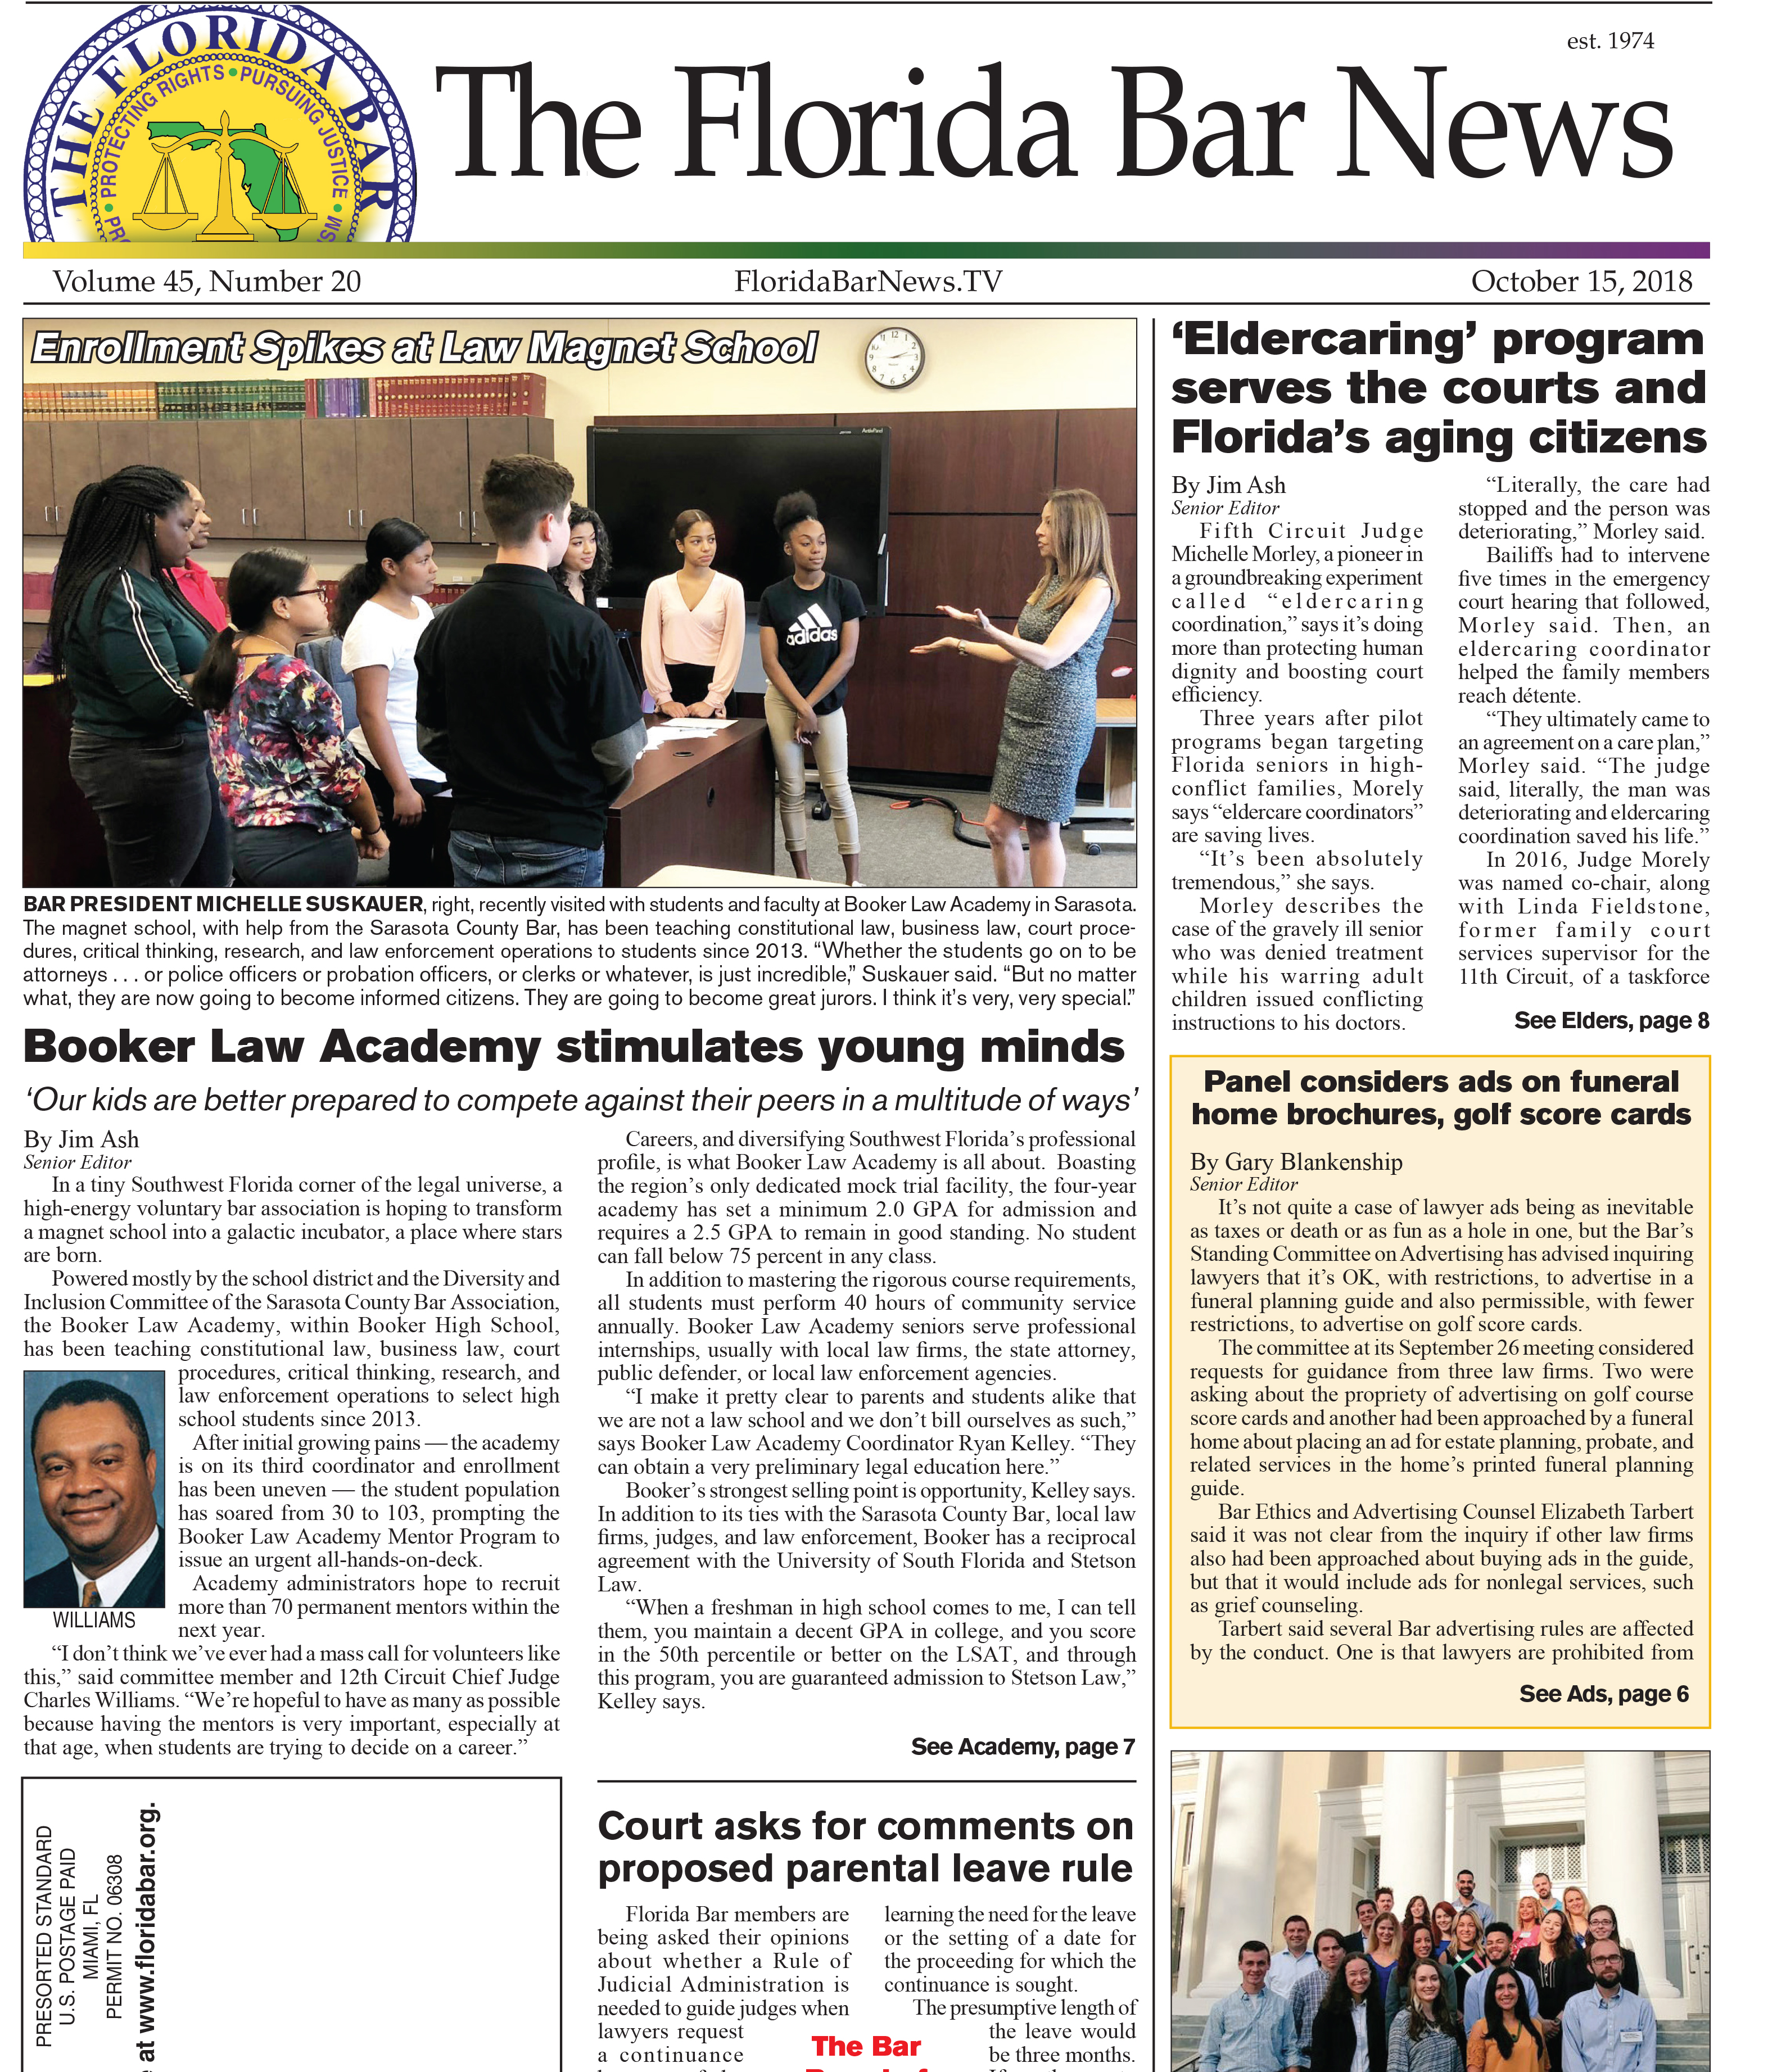 "The Oct. 15 Bar News: A law magnet school, new ""Eldercaring"" programs, and comments requested on proposed parental leave rule."